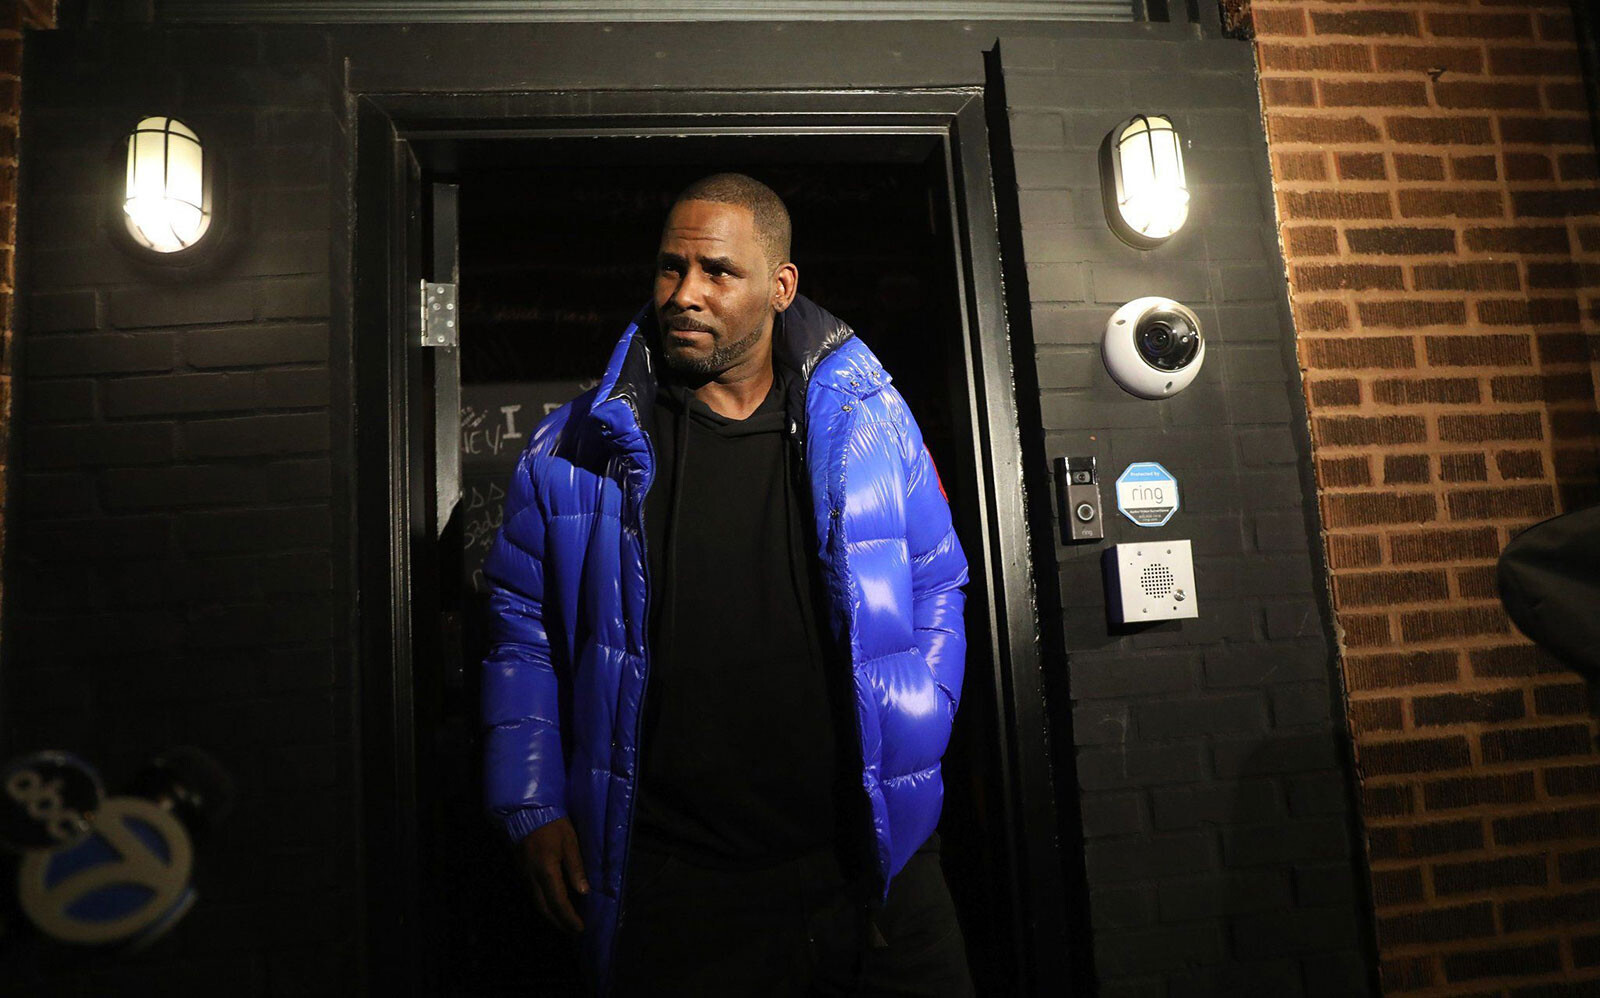 Testimony from former R. Kelly girlfriend gives window into life together